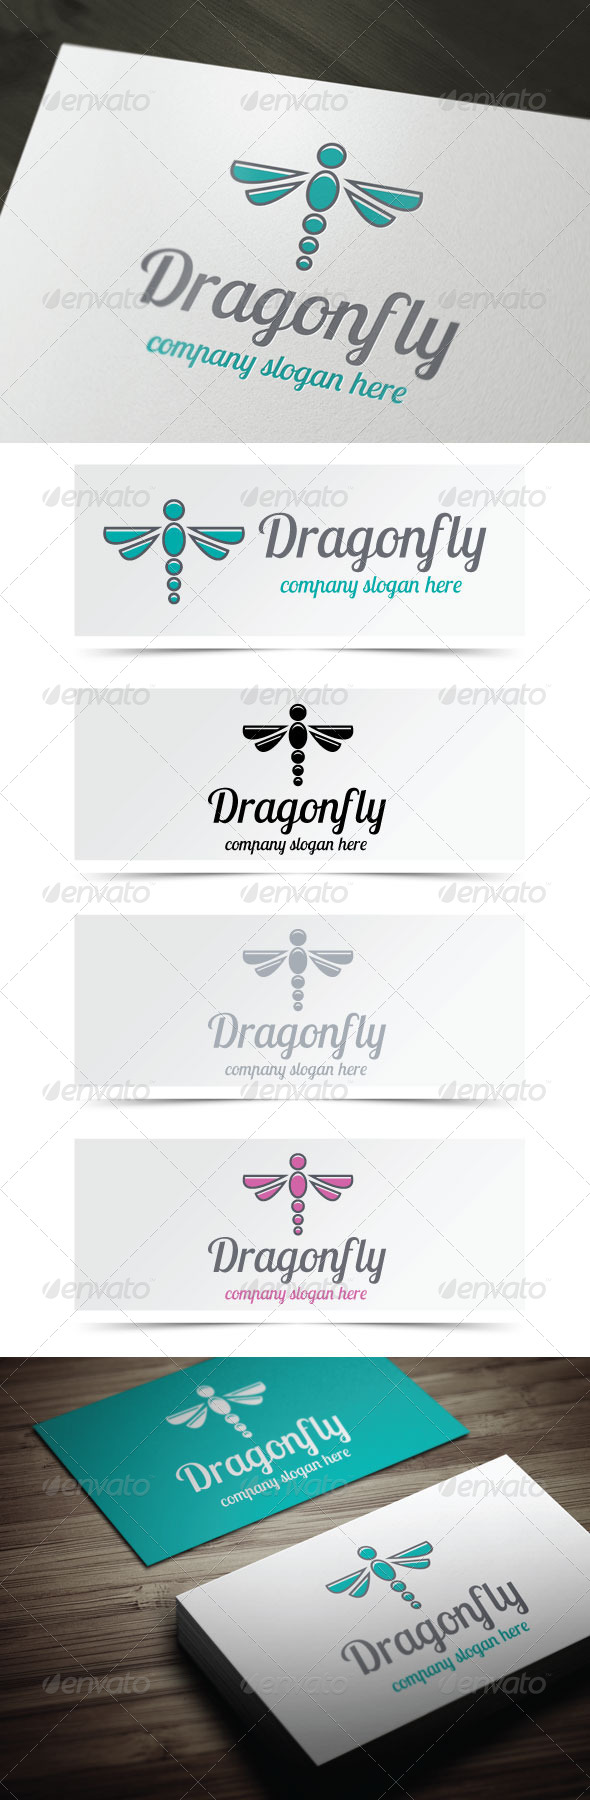 GraphicRiver Dragonfly 4710689